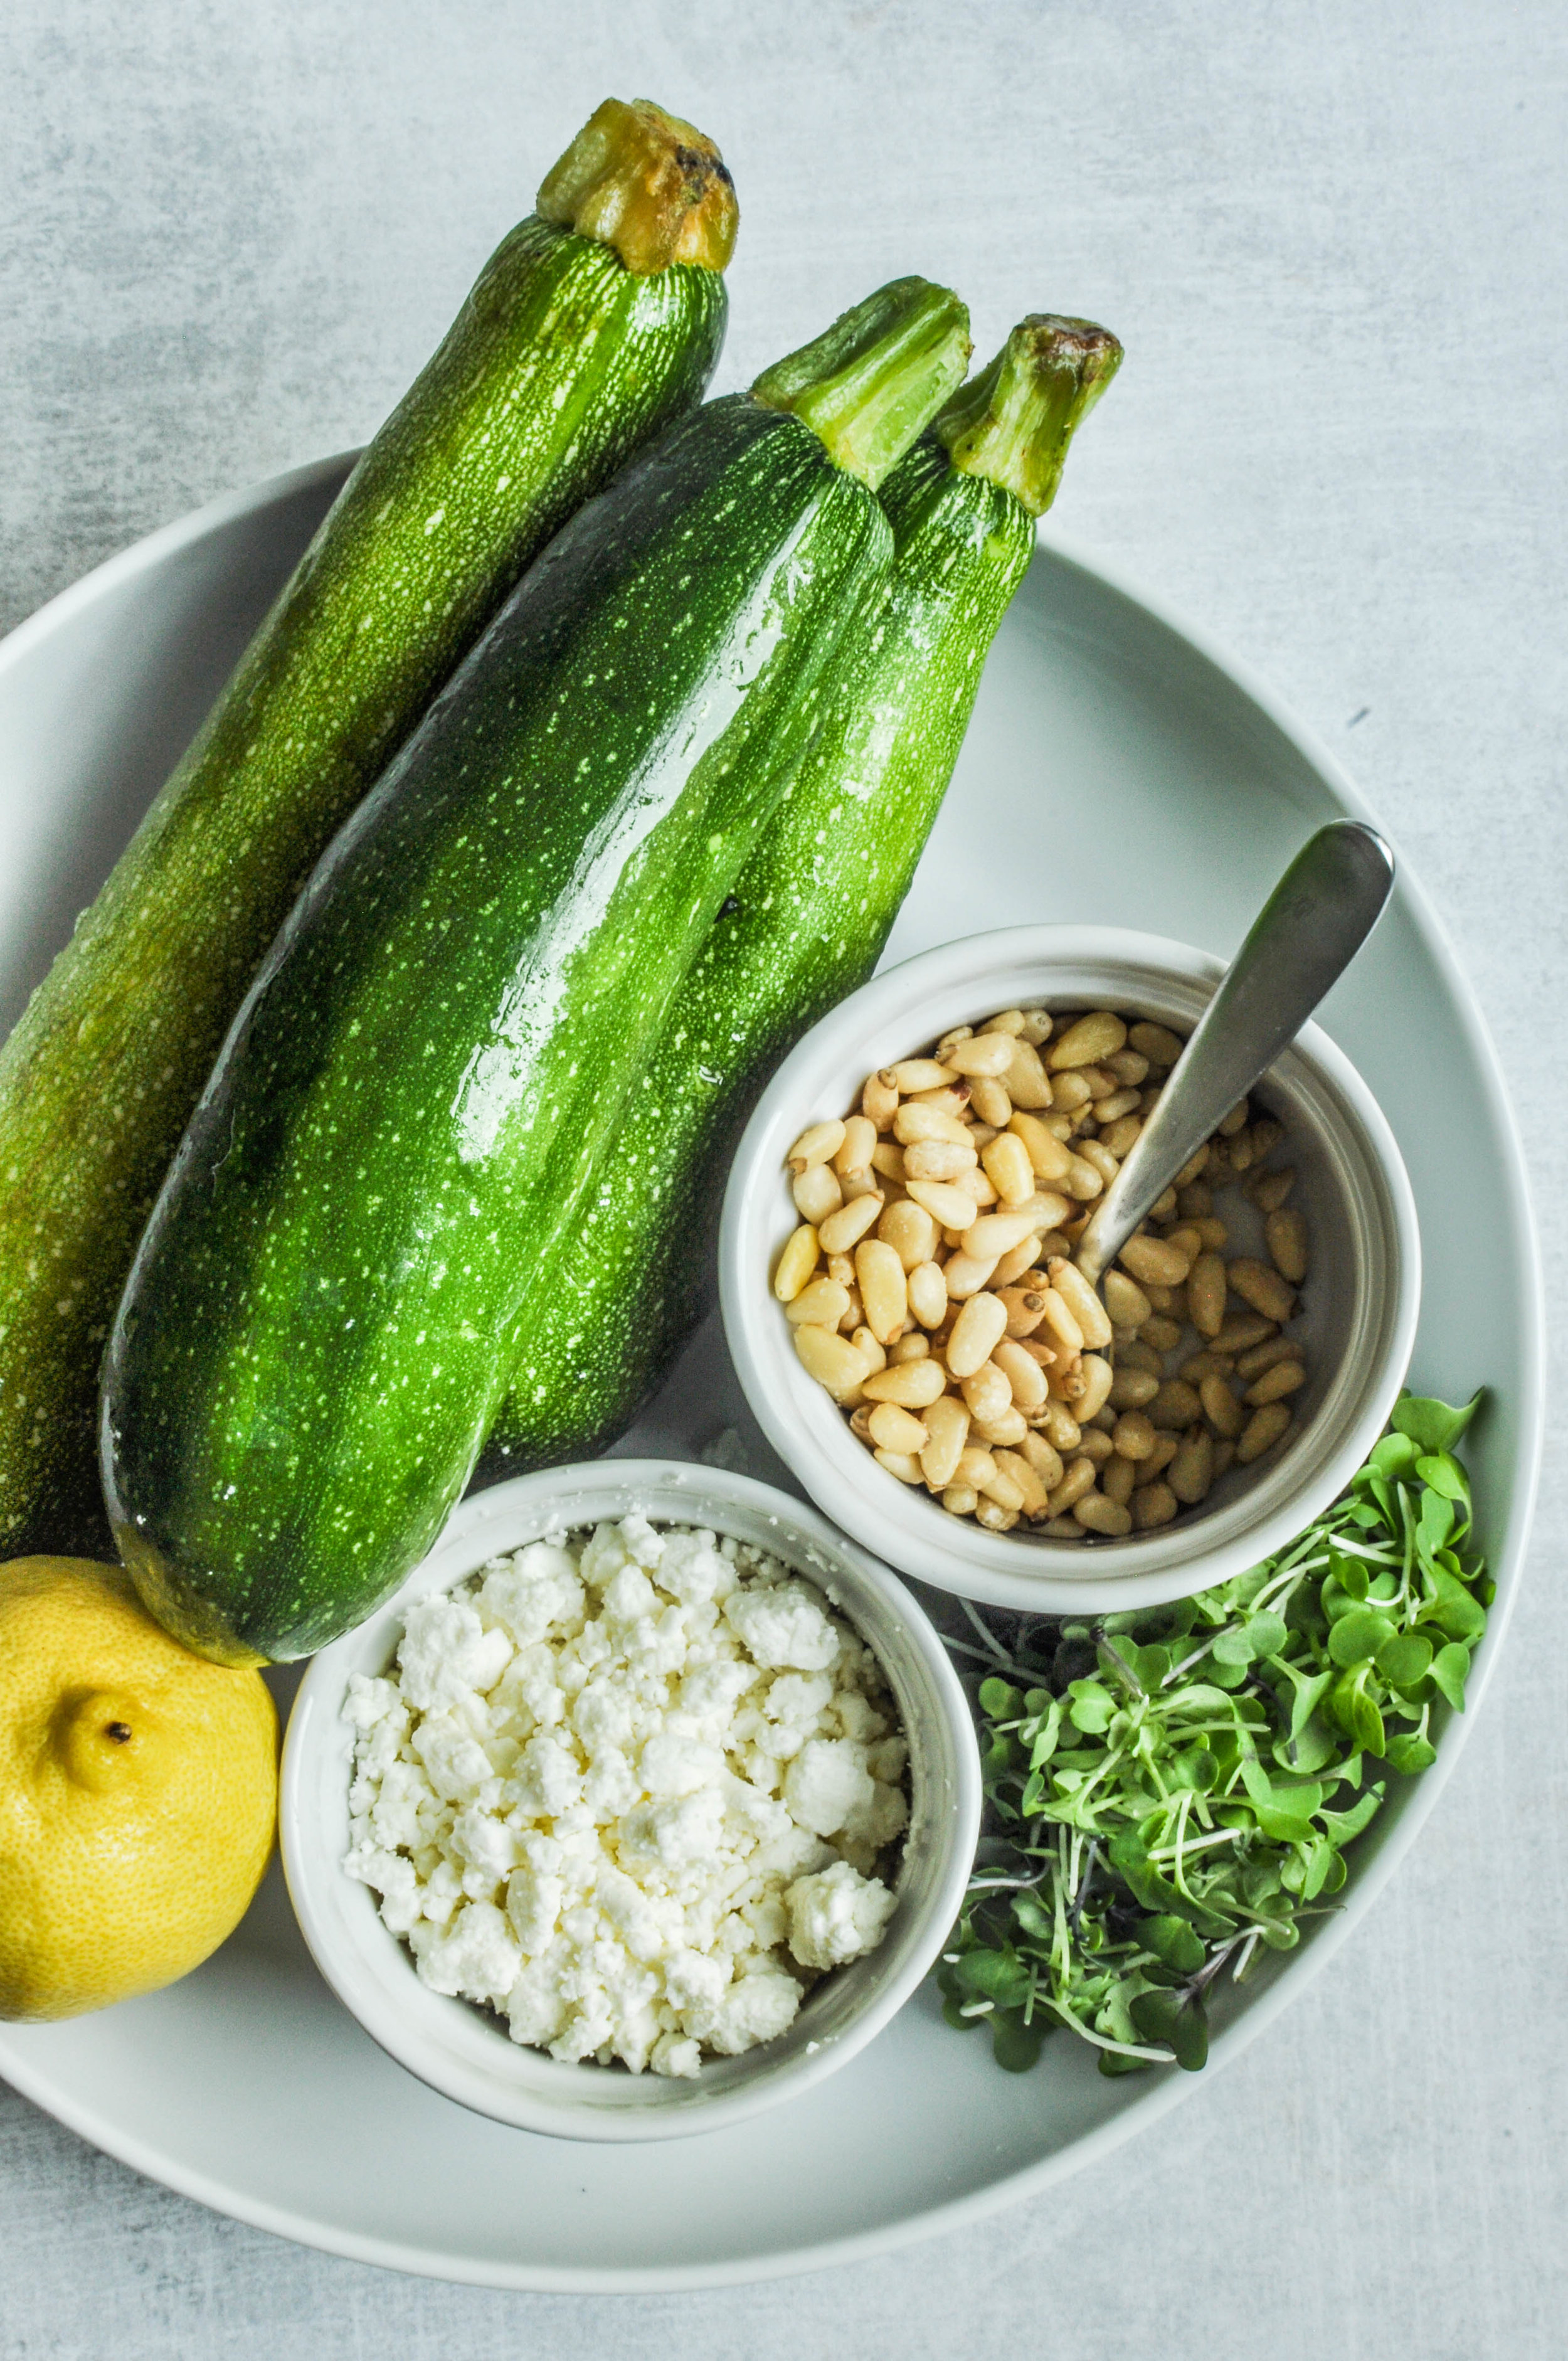 This shaved zucchini recipe is fabulous side dish with goat cheese, pine nuts, lemon, and microgreens.